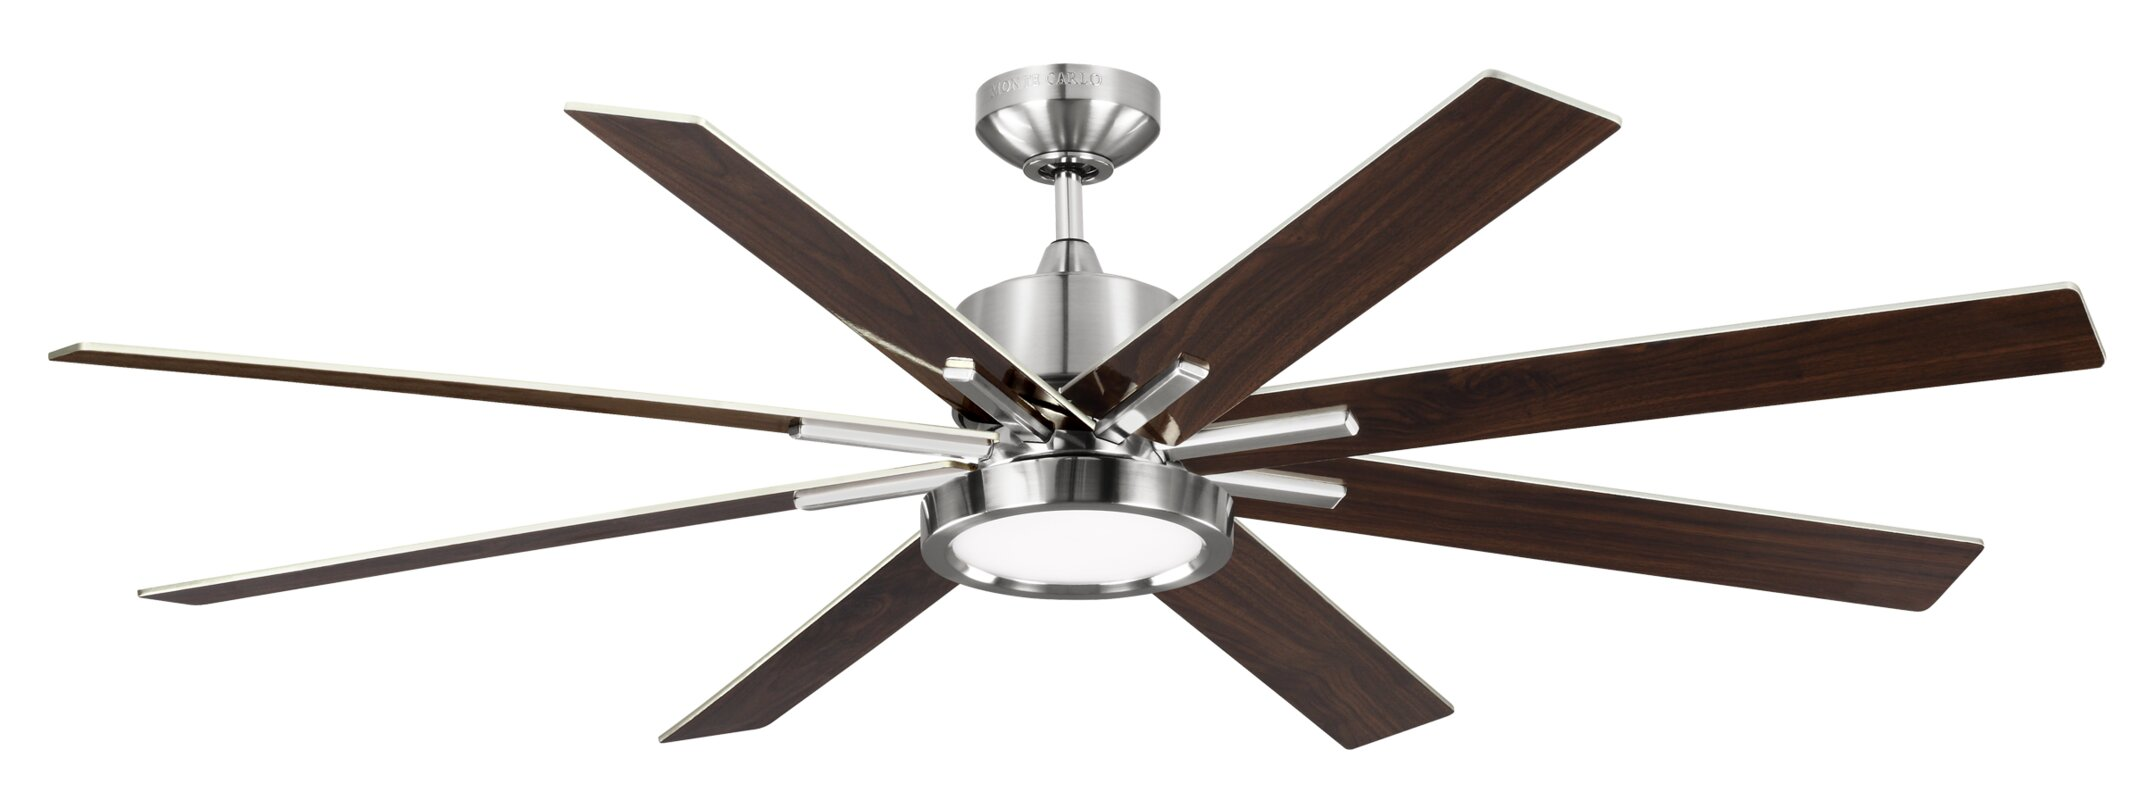 "wade logan 60"" woodlynne 8 blade outdoor ceiling fan with remote"